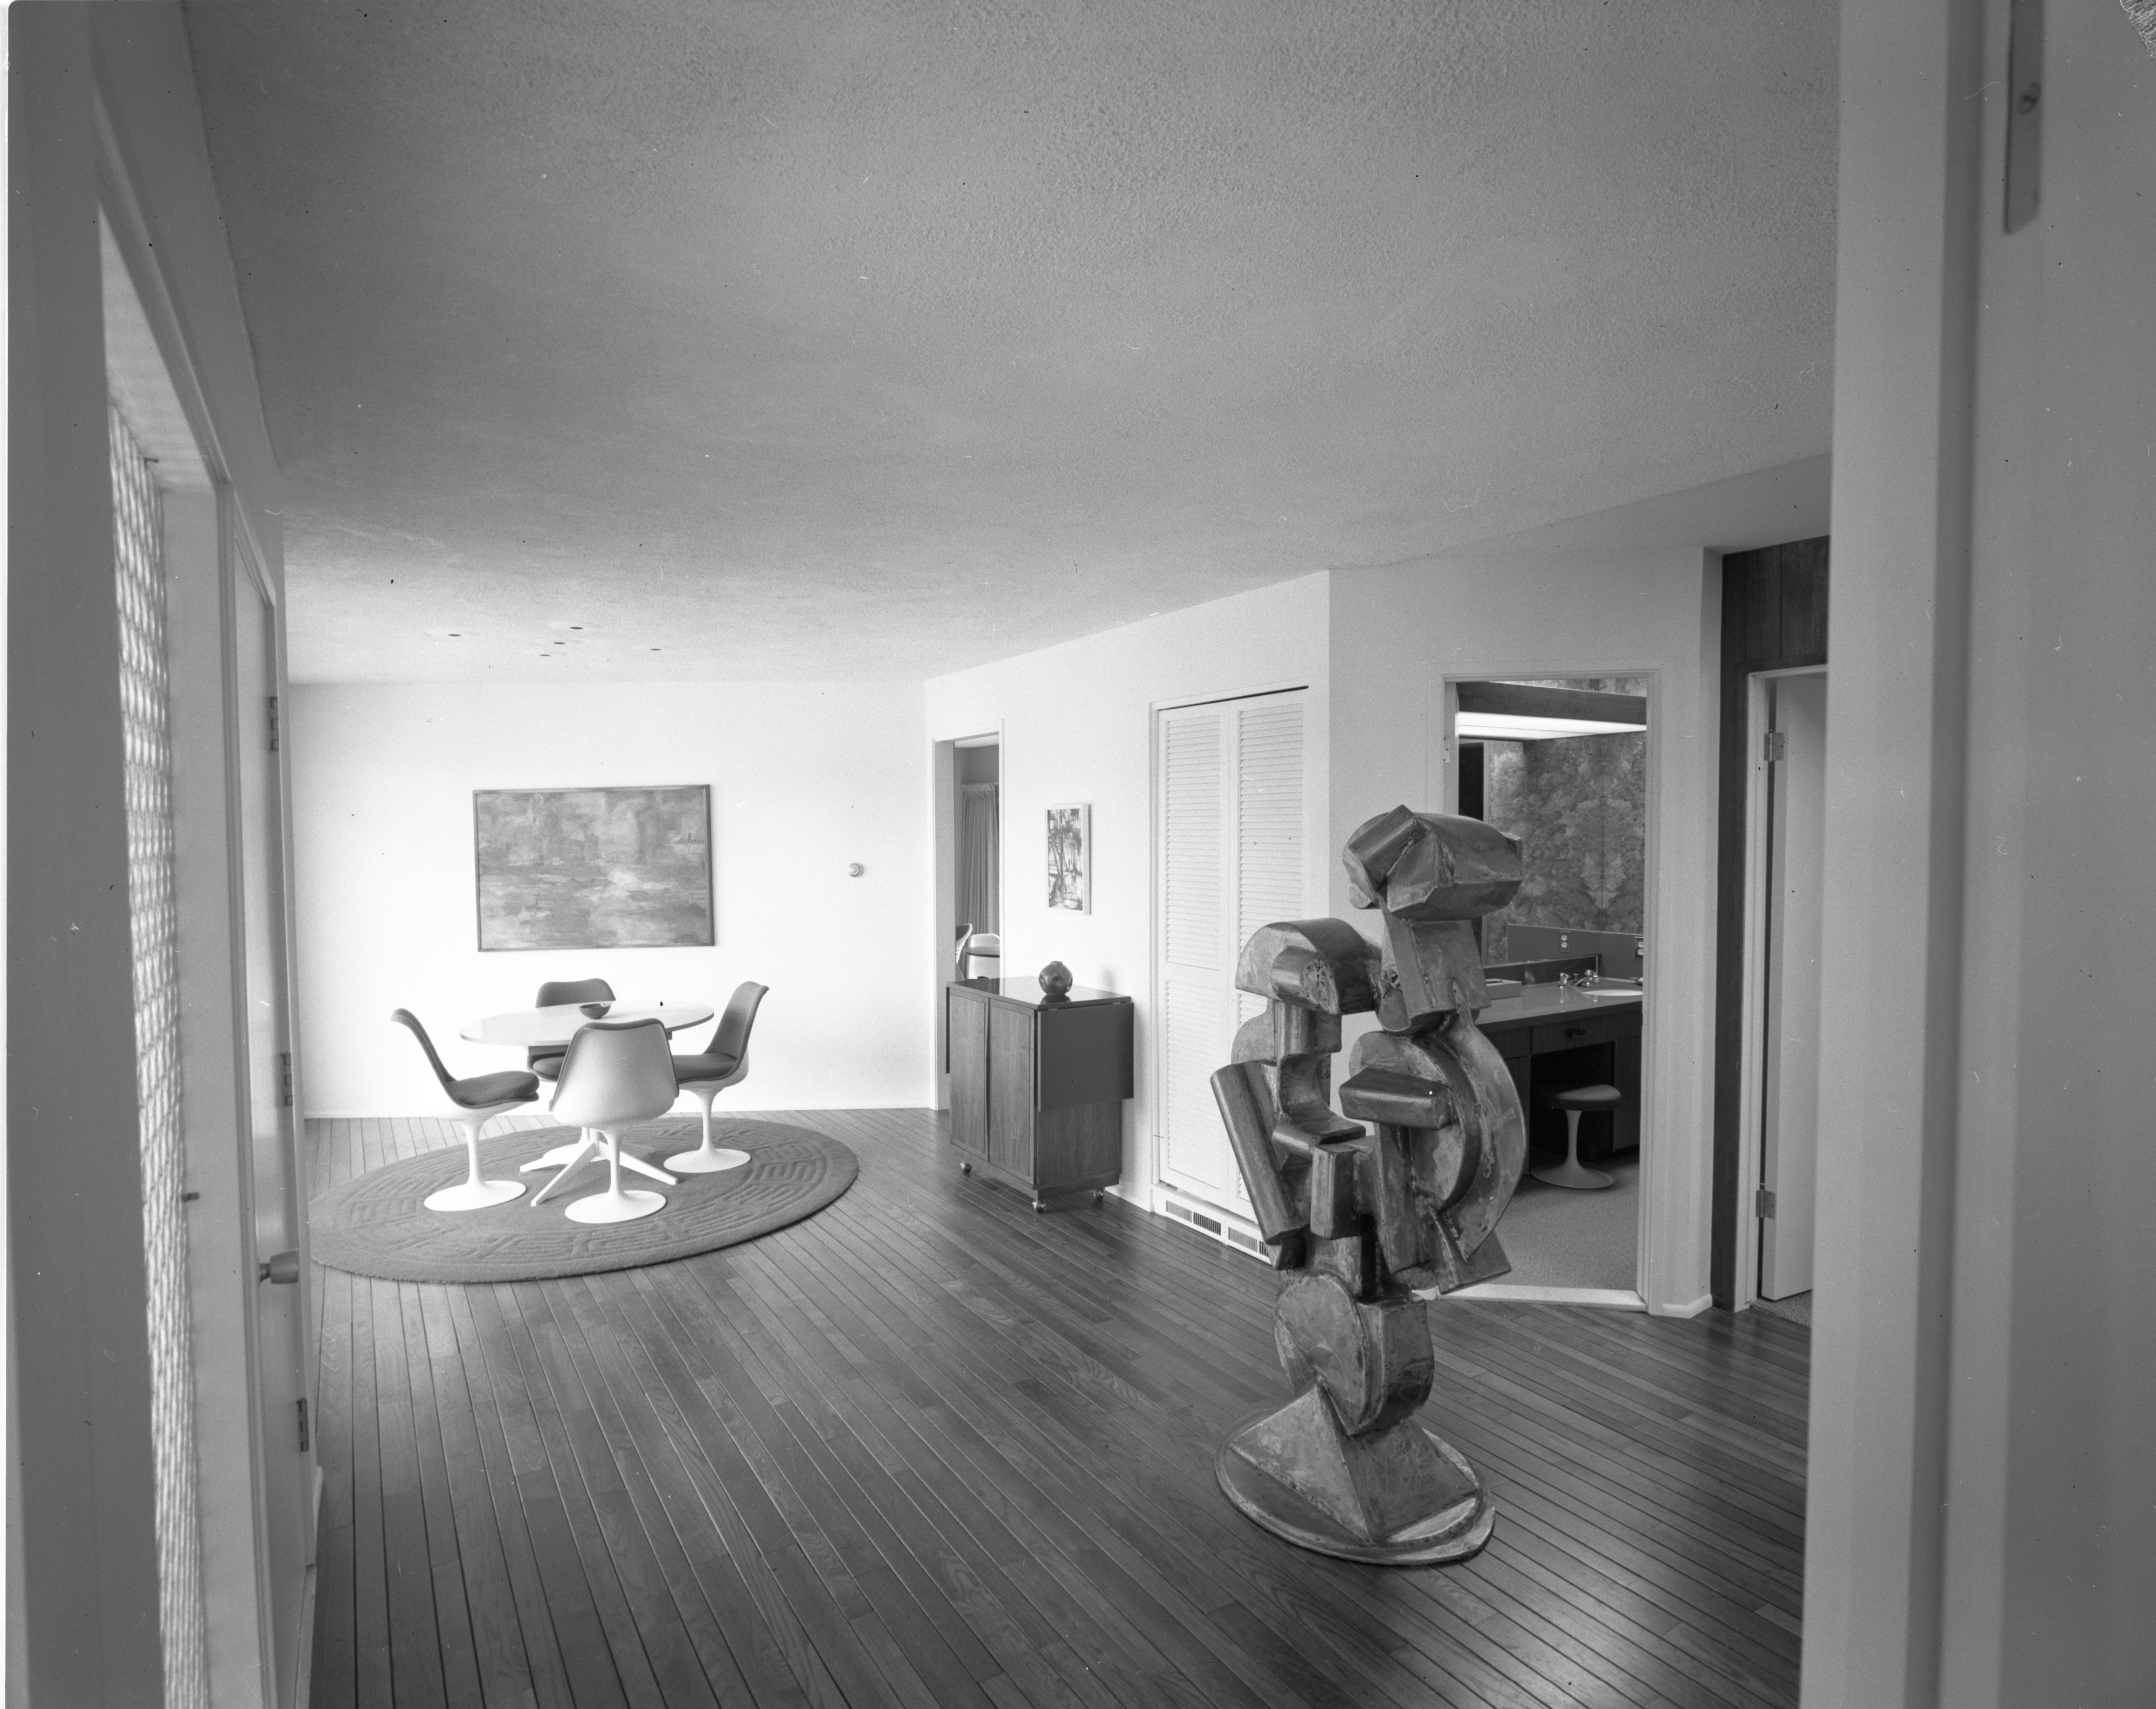 Sculpture Dominates Entrance Hall at Merlyn C. Keller Residence, April 1967 image